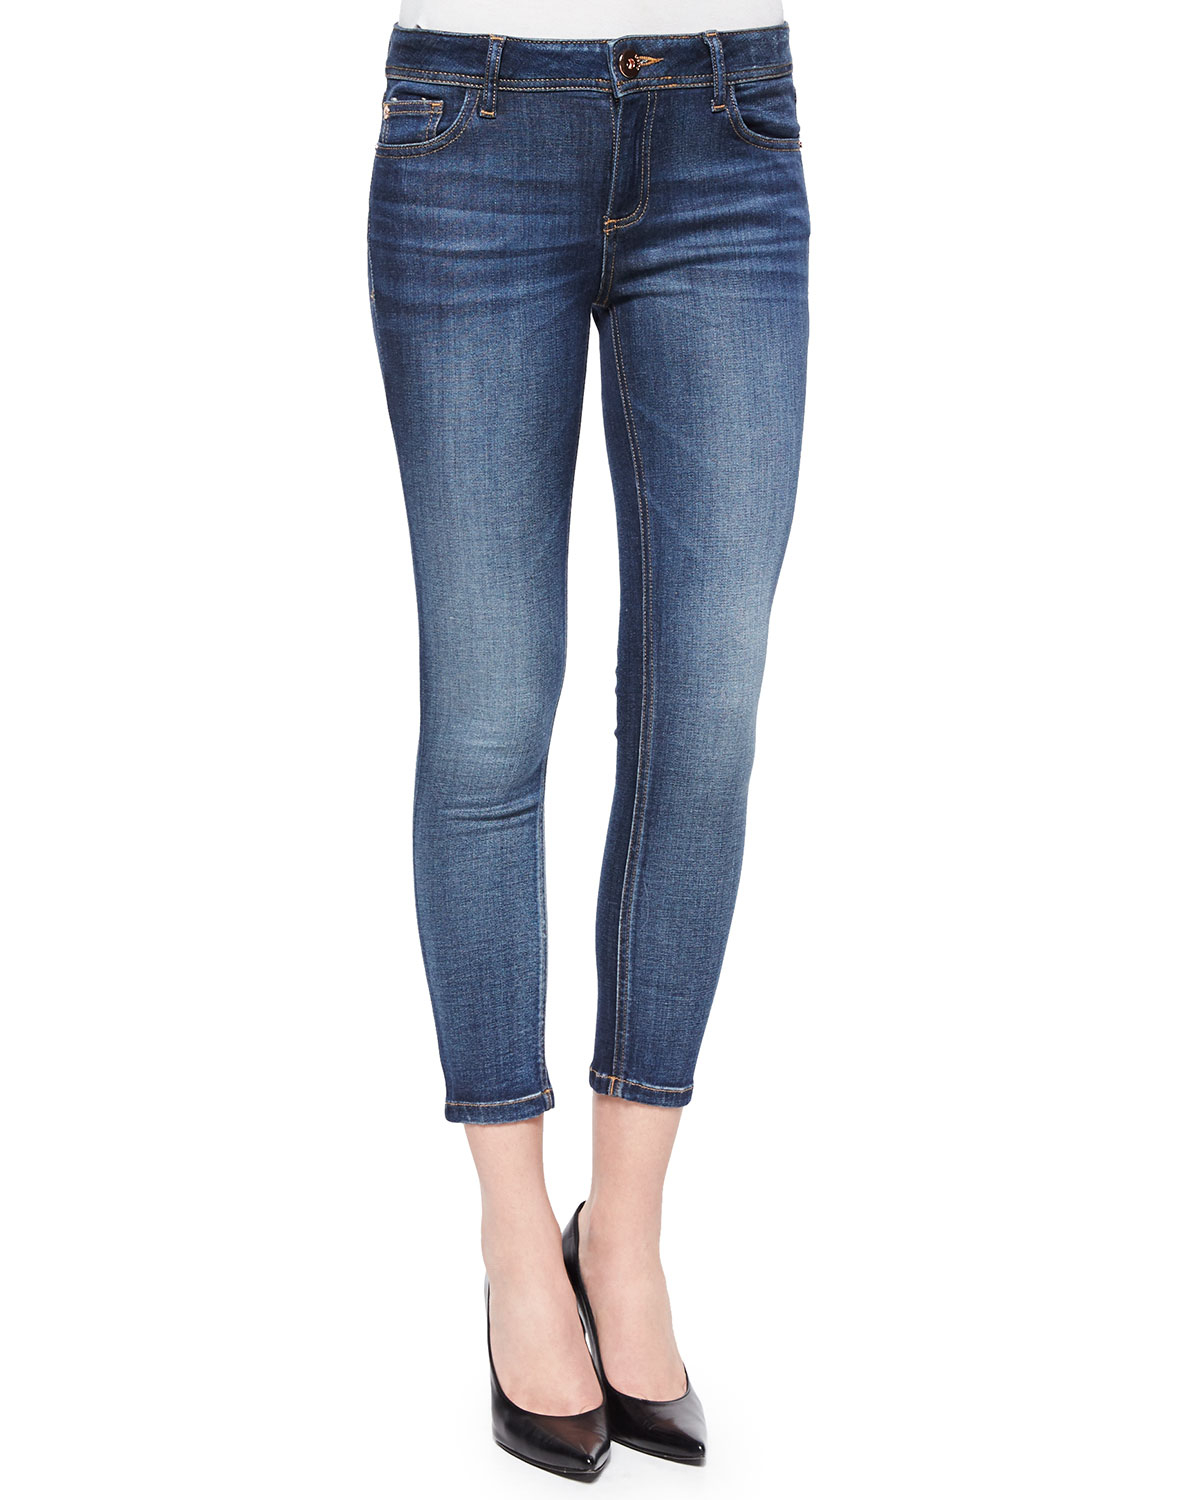 Crafted with stretch for the most comfortable fit, these cropped skinny charcoal jeans from 7 for all Mankind are a flattering choice. Distressed trims and scattered detail on the ankles keep the look current and contemporary.